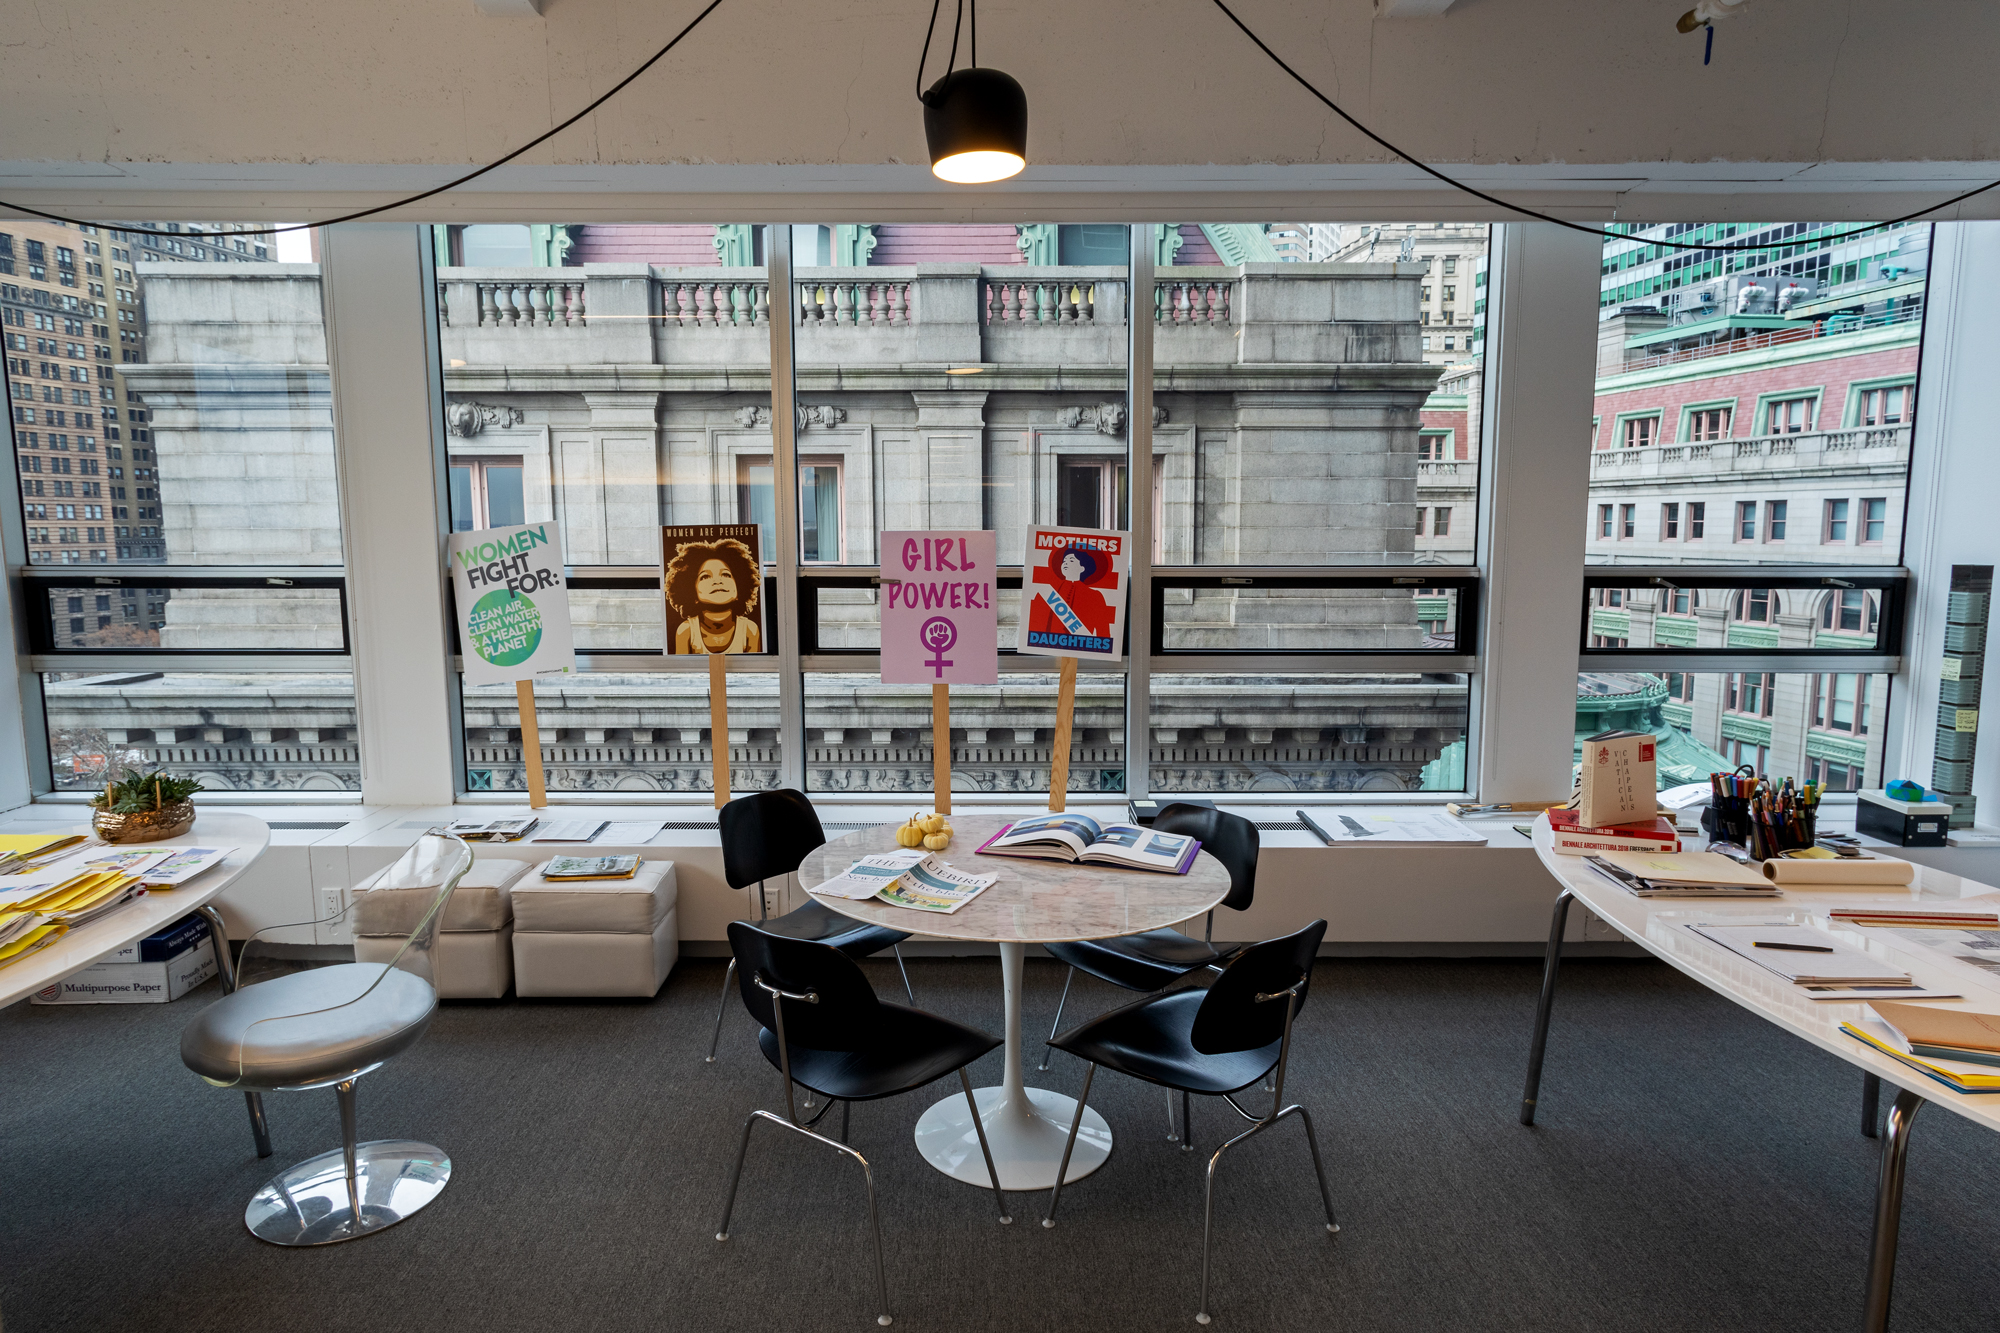 INTERVIEW: Architect Nancy Ruddy on 30 years in NYC, adding